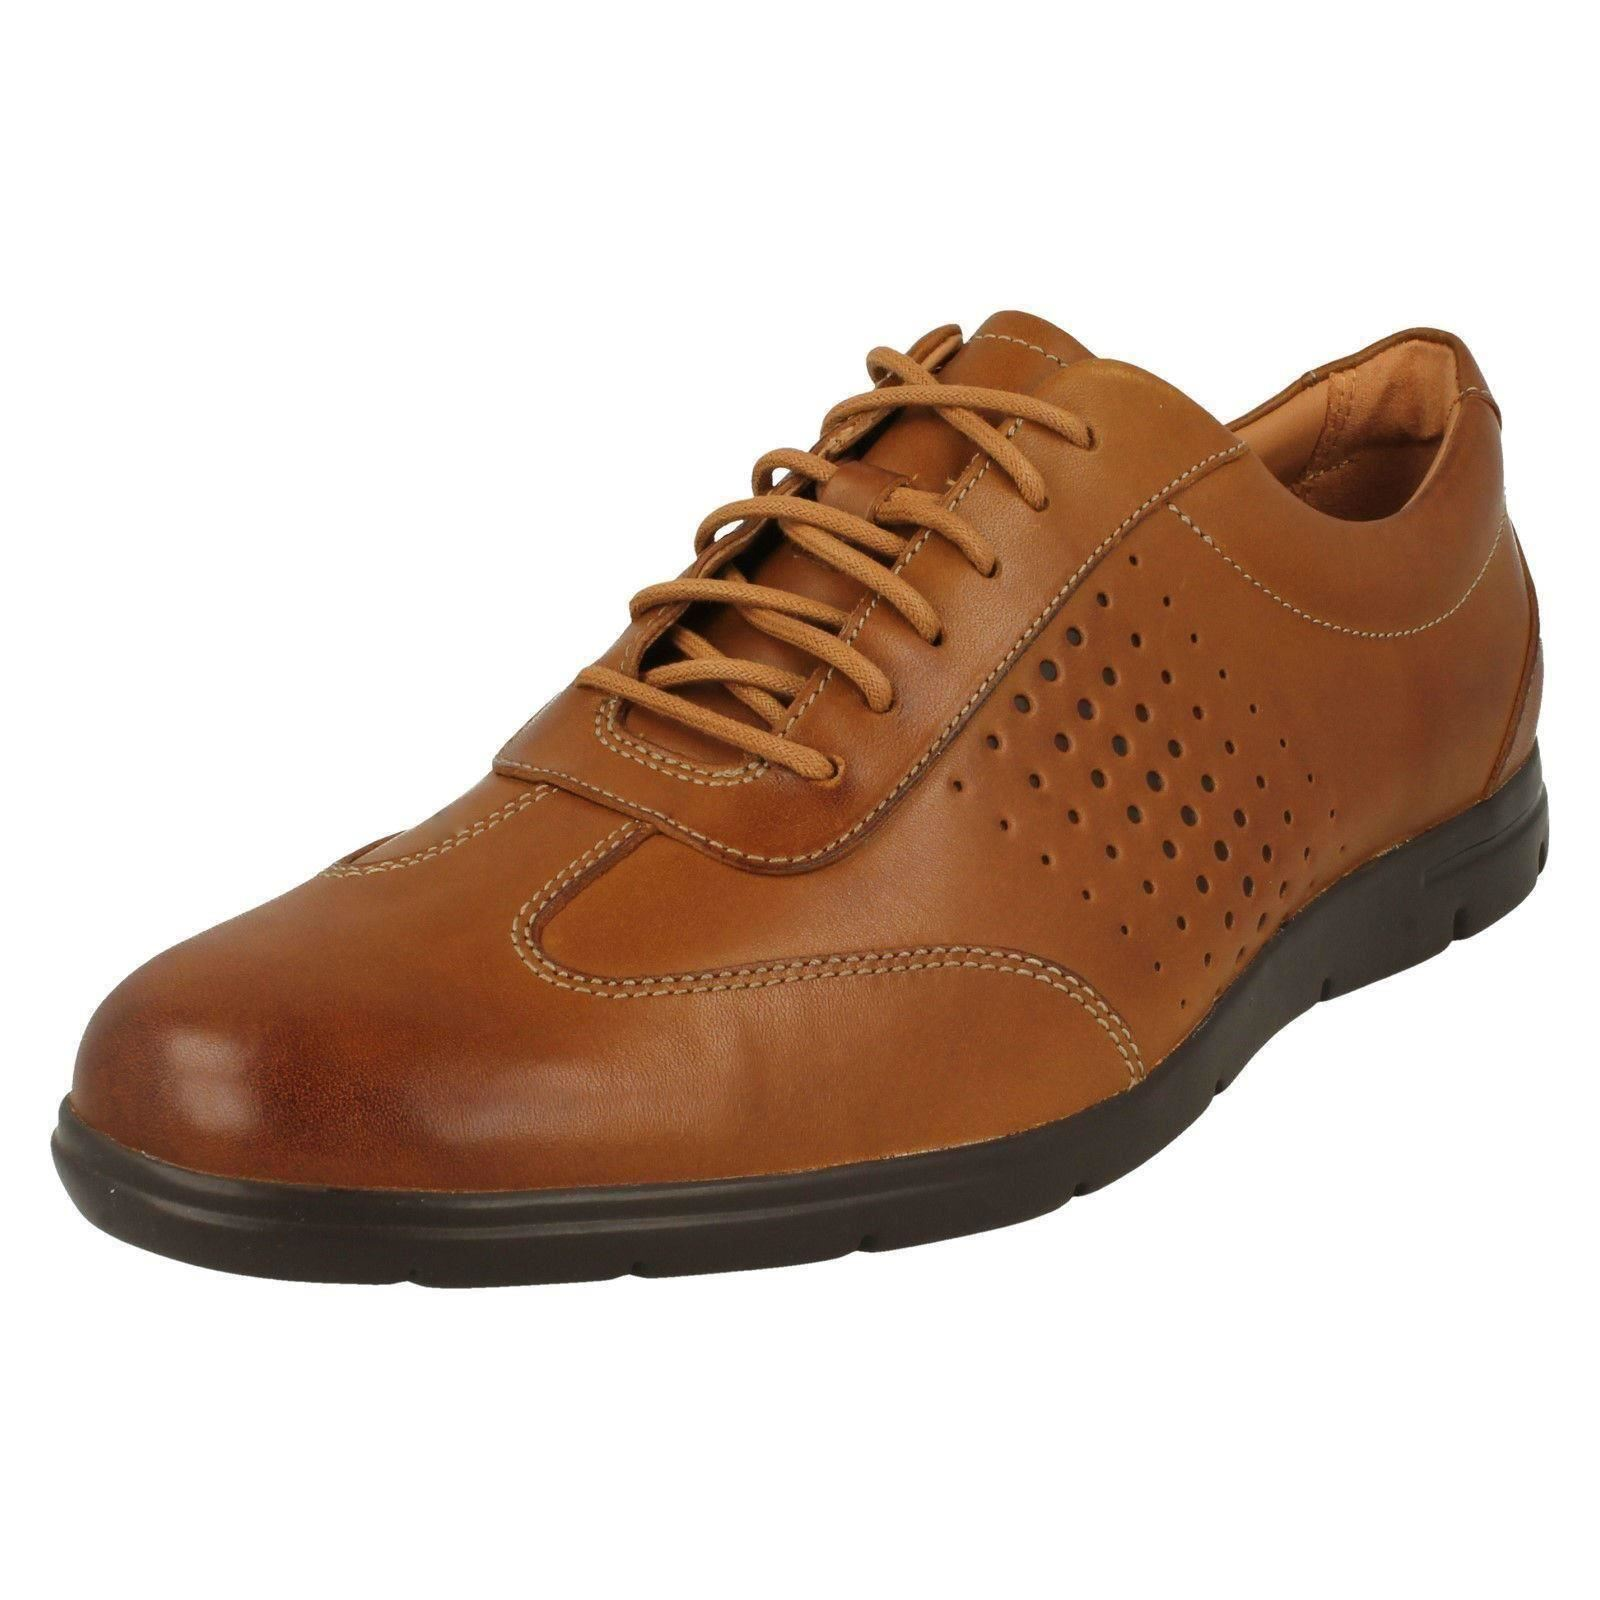 Mens Clarks Vennor Vibe Tan Leather Casual Lace Up Shoes